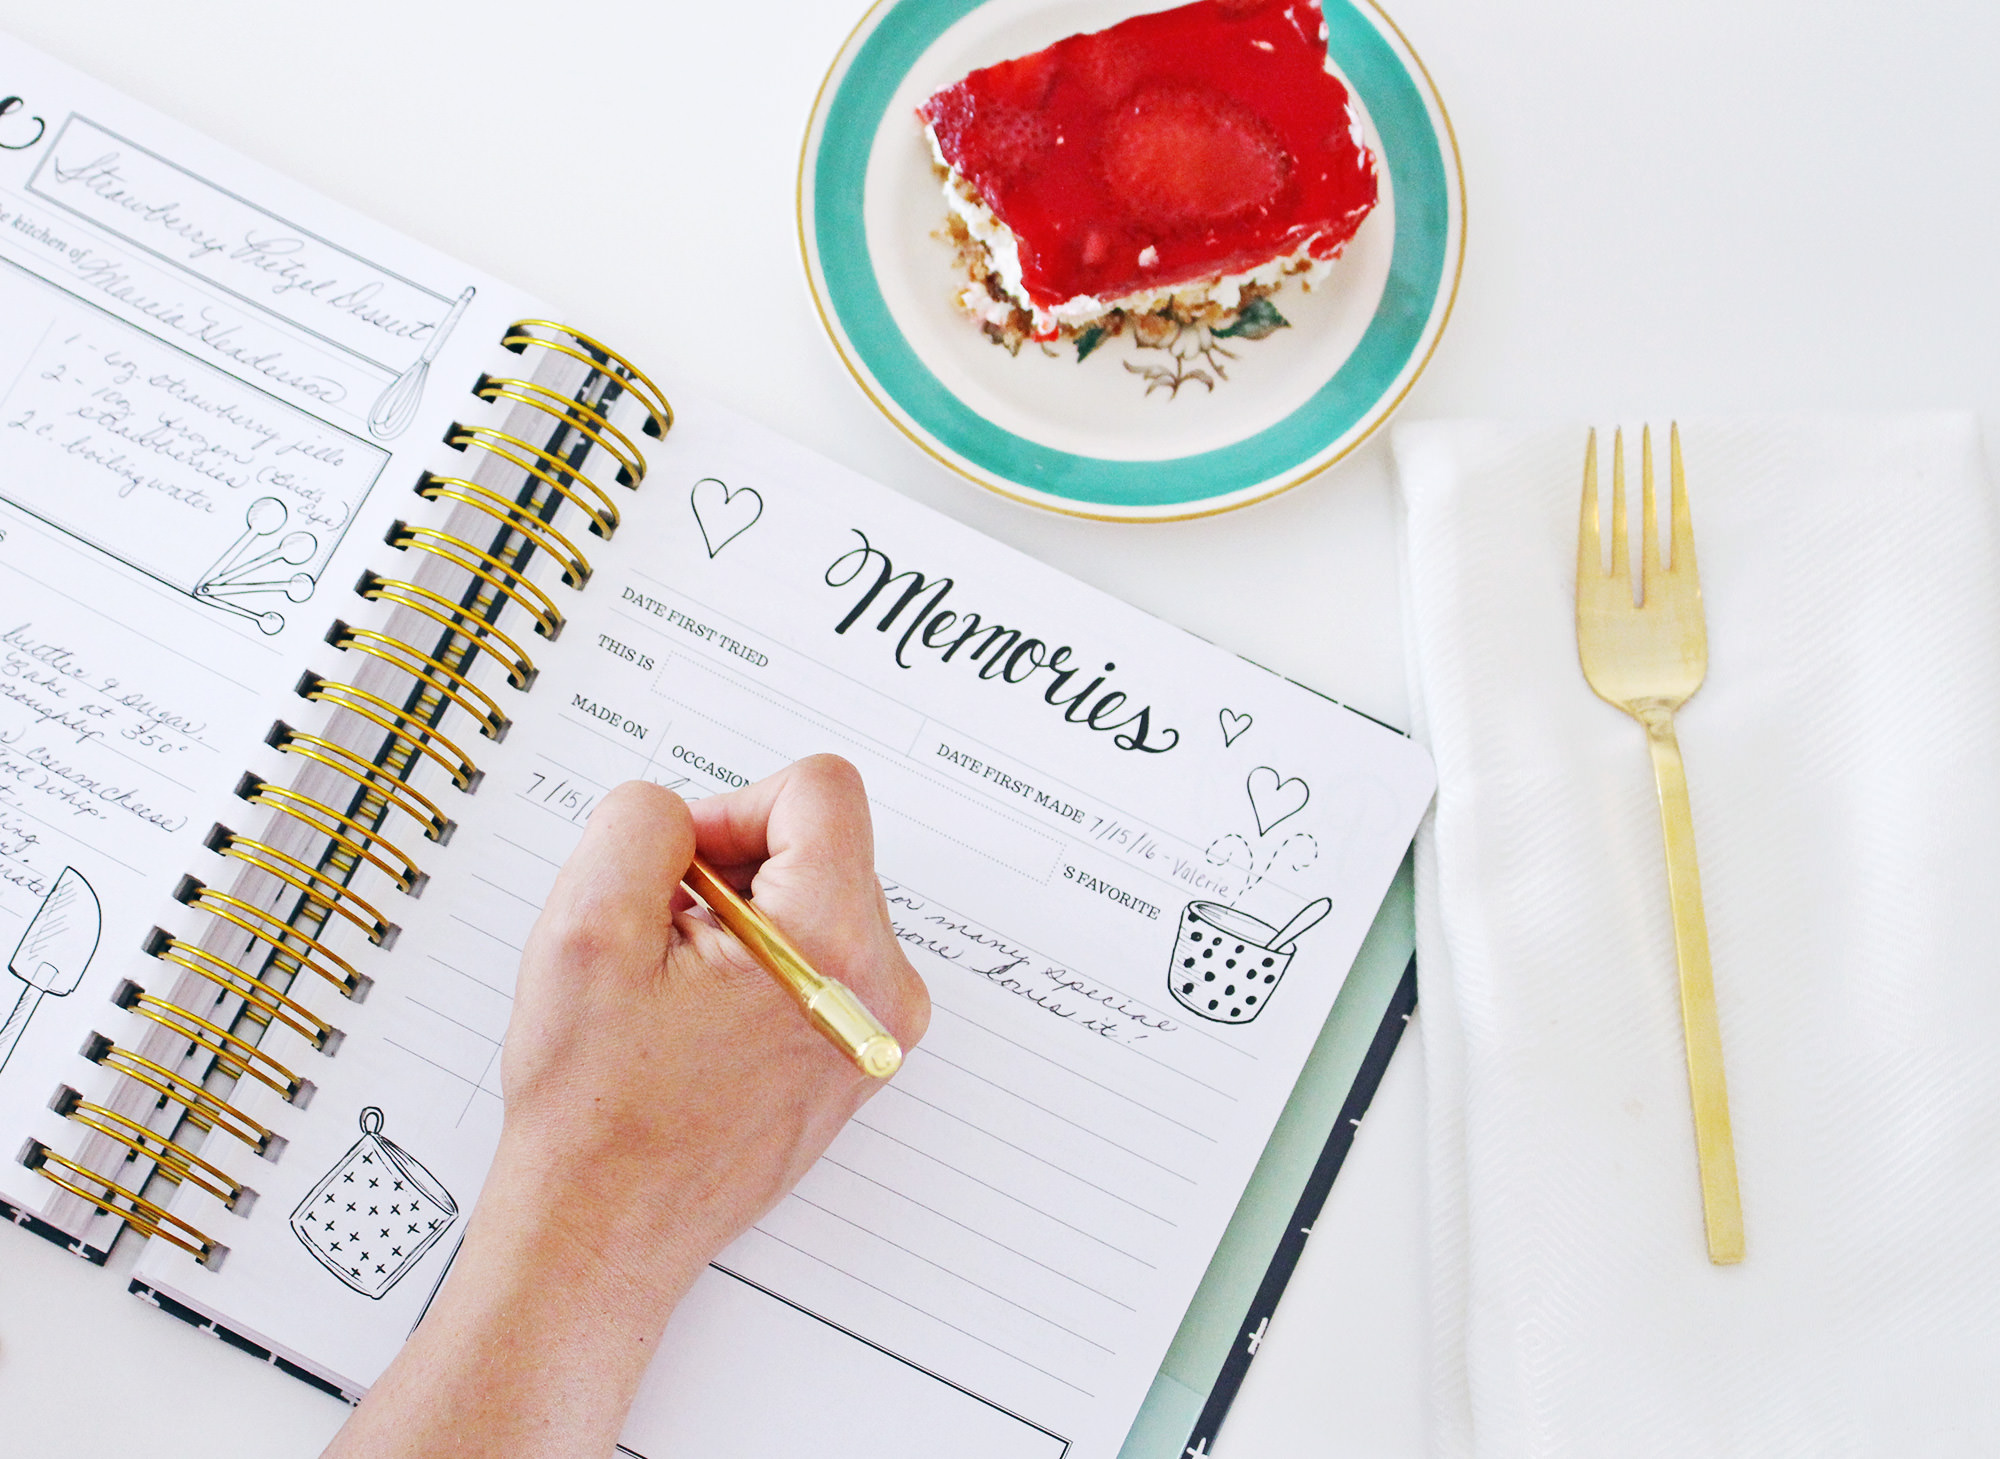 You can record memories on the journaling side of the Keepsake Kitchen Diary.